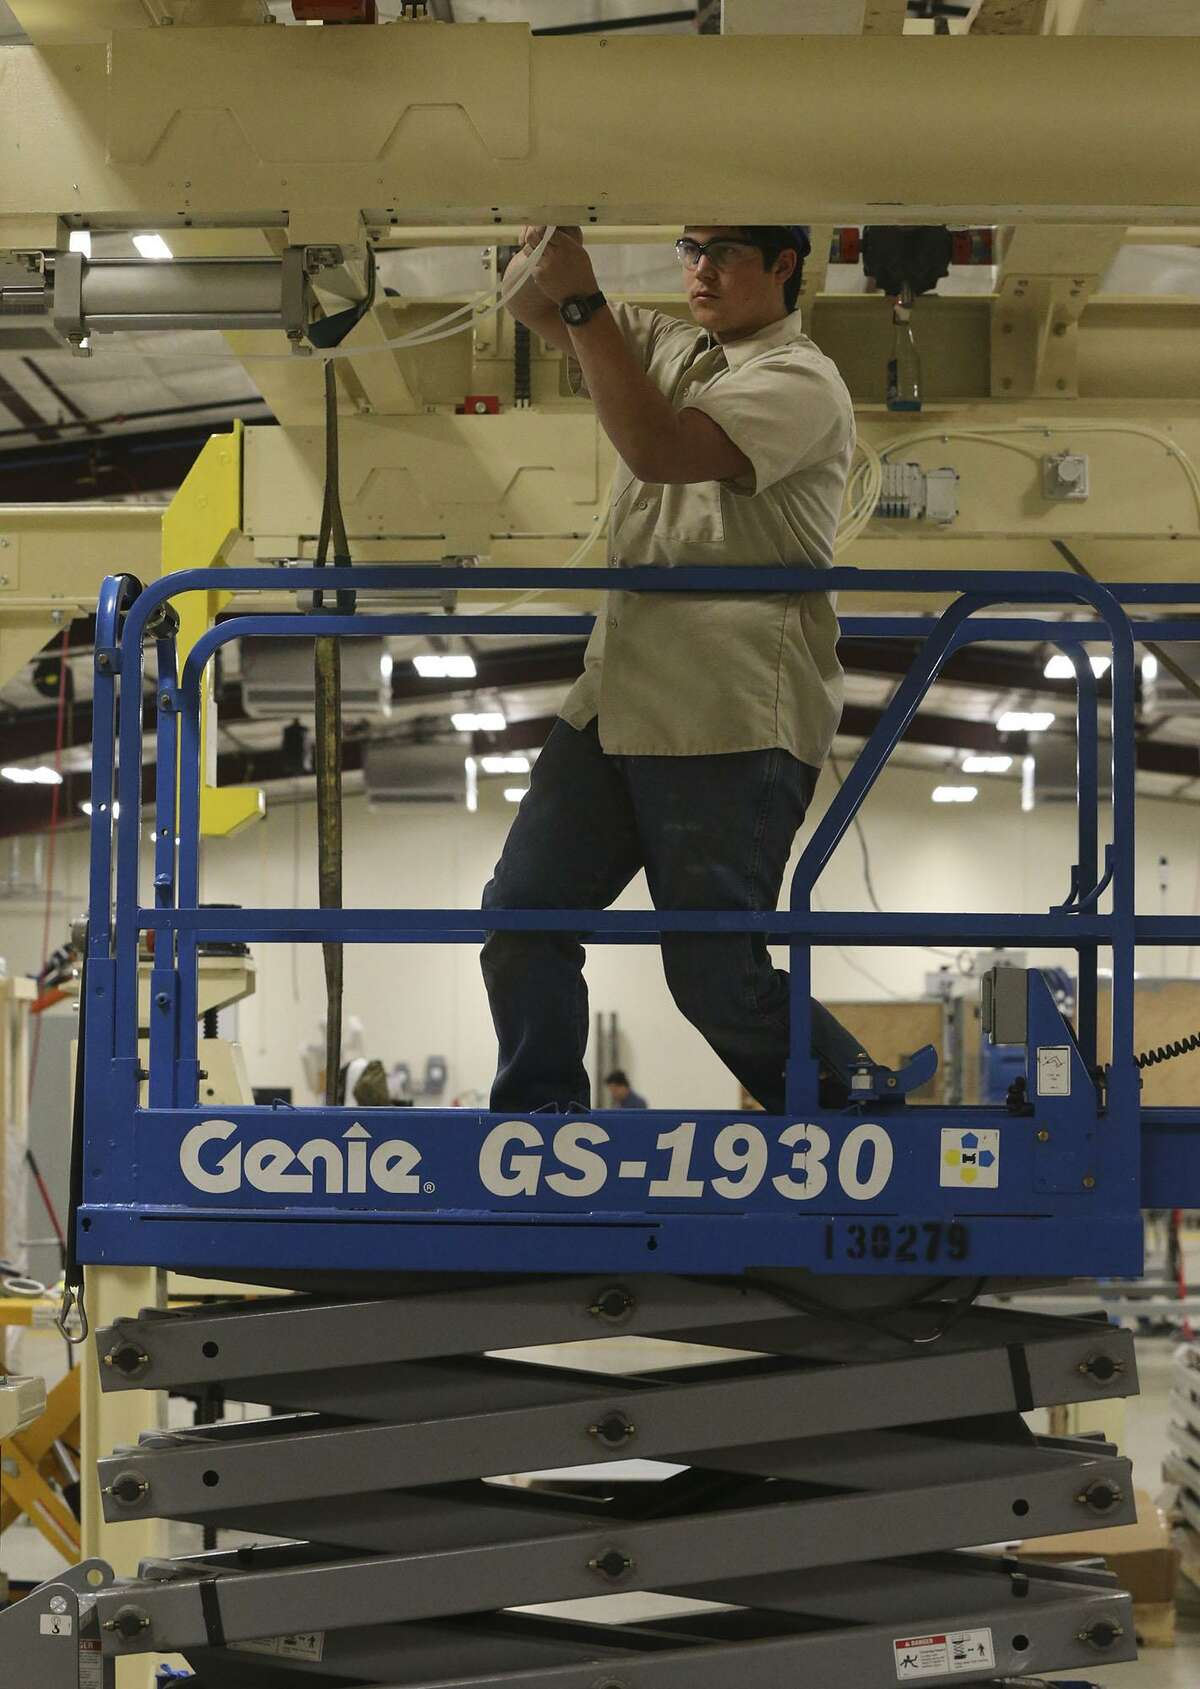 James Mansfied, a paid intern at Innovation Technology Machinery in Schertz, works on a transfer system for Toyota trucks. The Manufacturing Outlook Survey conducted by the Dallas Fed for February saw more manufacturers discussing market basics rather than Donald Trump. Since Trump's November election, many manufacturers had commented on the potential benefits of a business-friendly Trump administration.